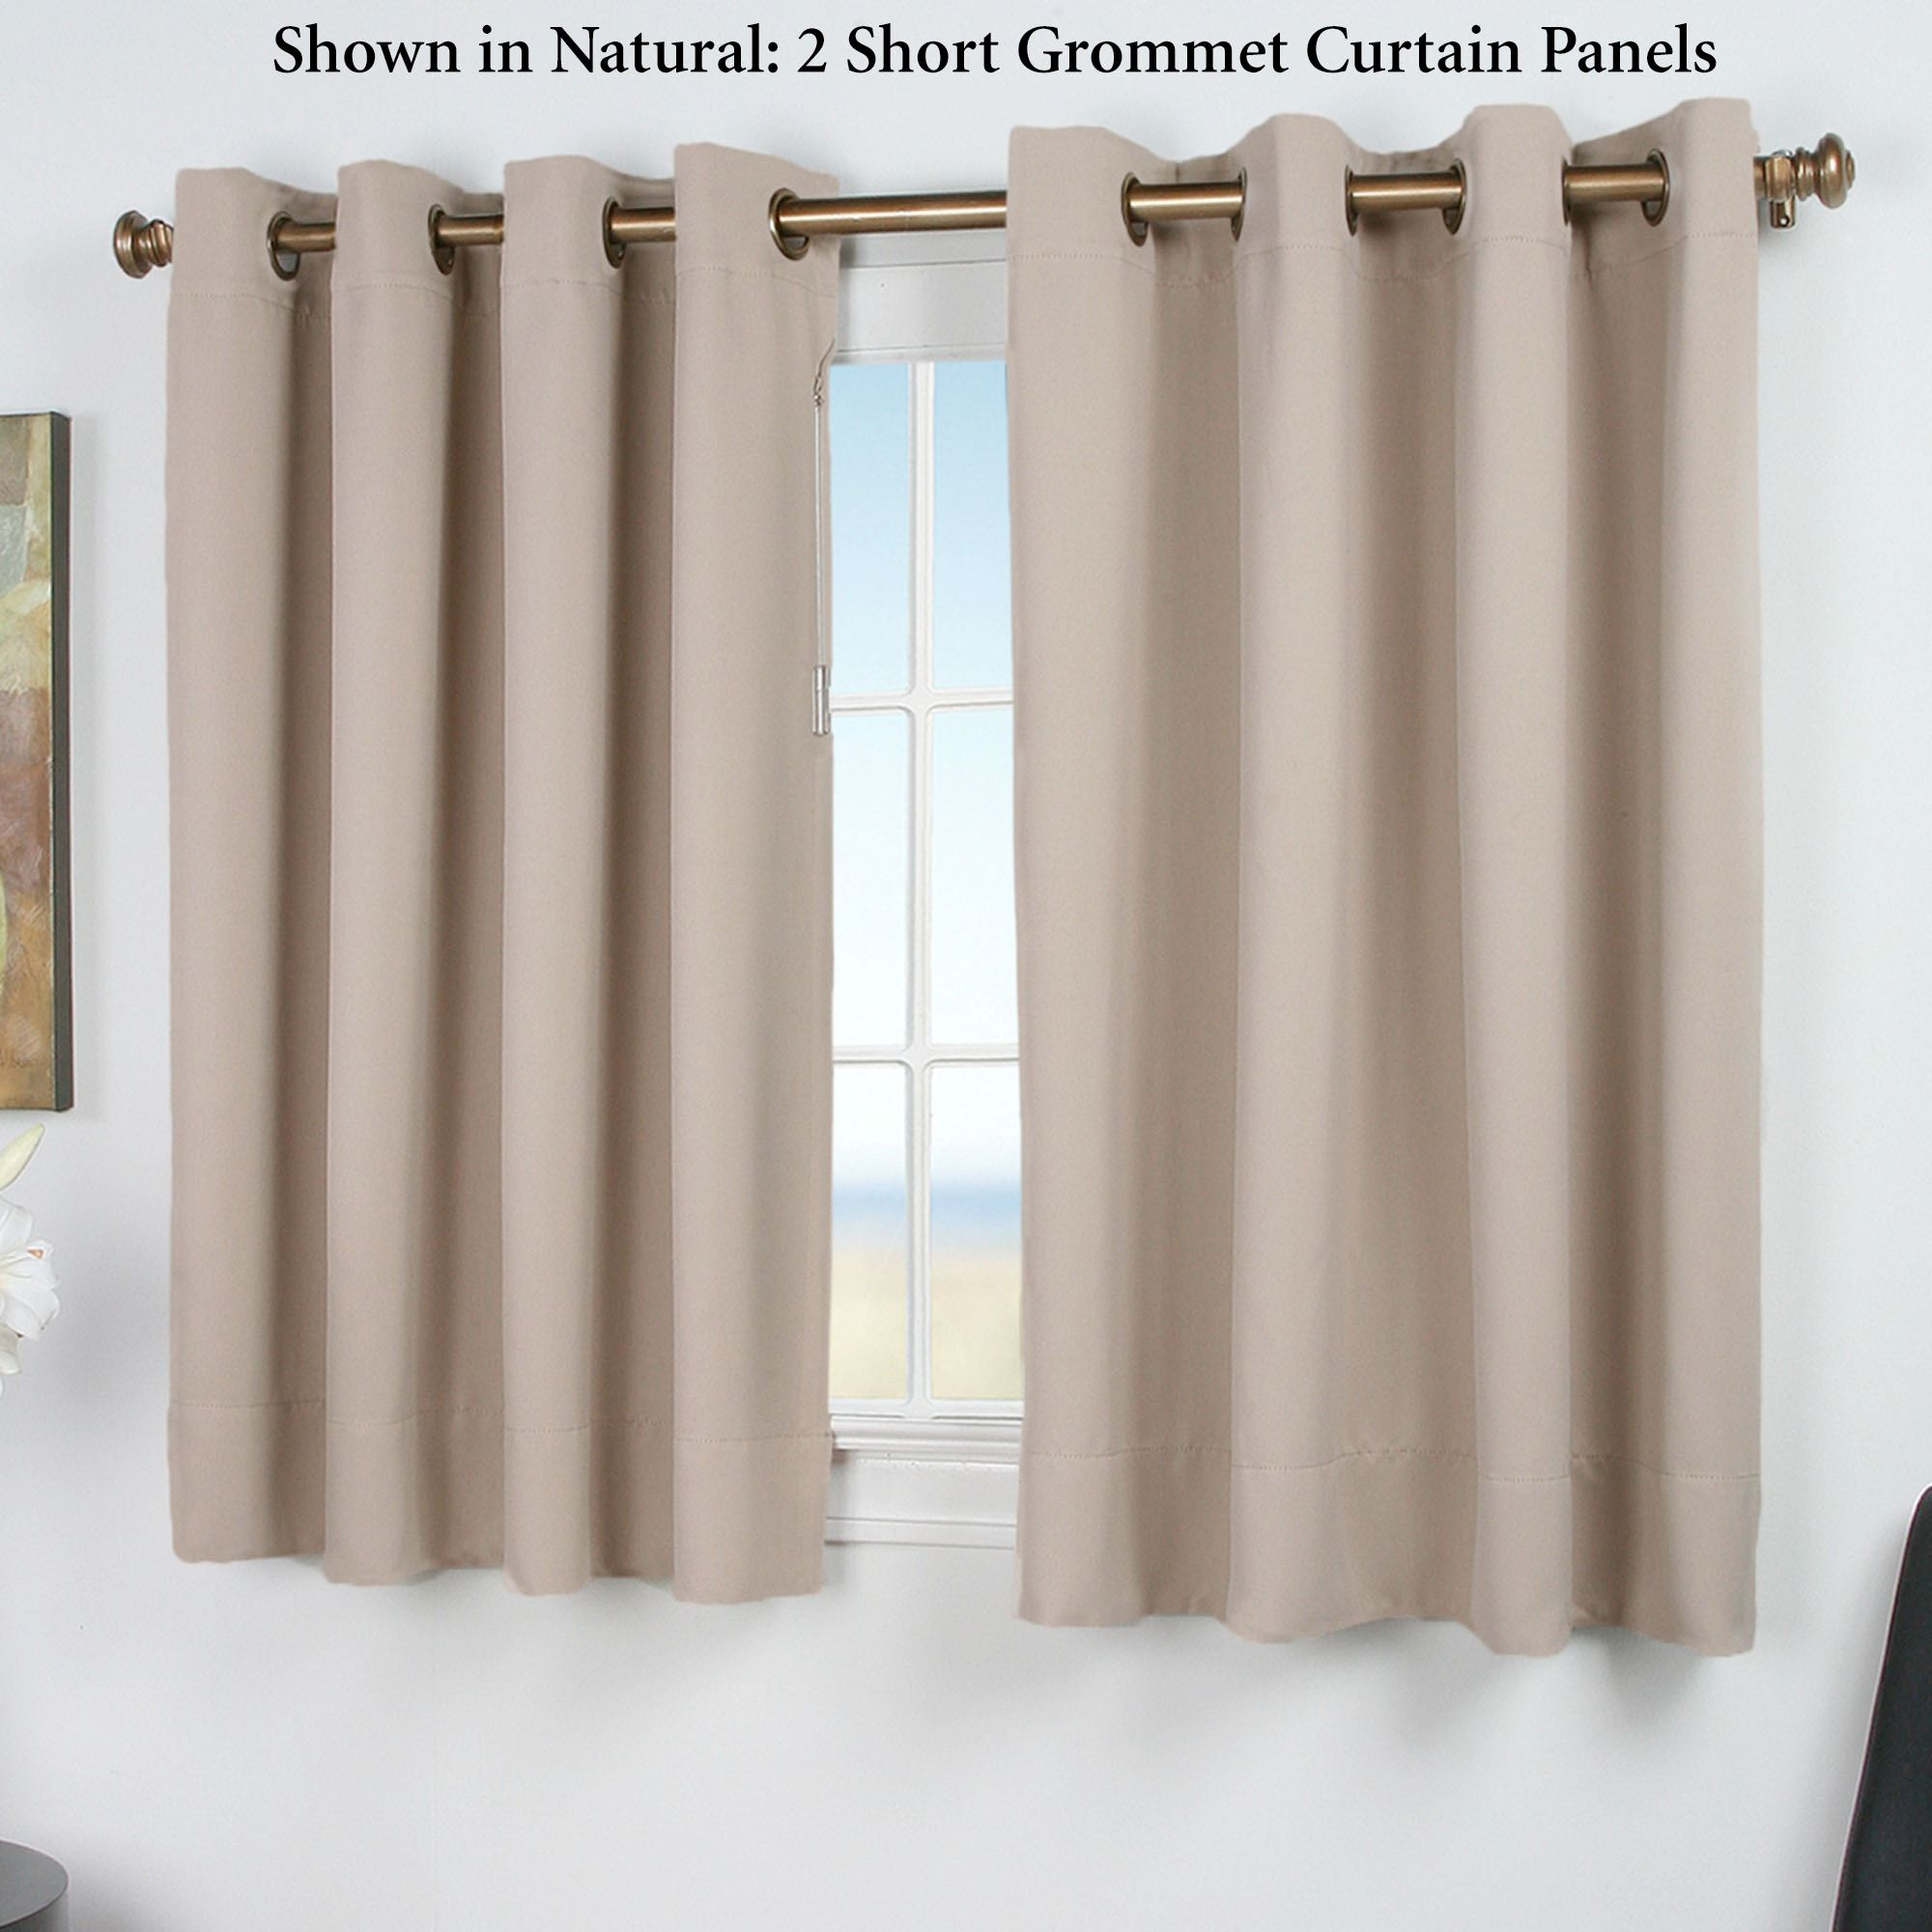 Blackout Curtains And Thermal Curtain Panels Touch Of Class Intended For Thermal And Blackout Curtains (Image 6 of 15)